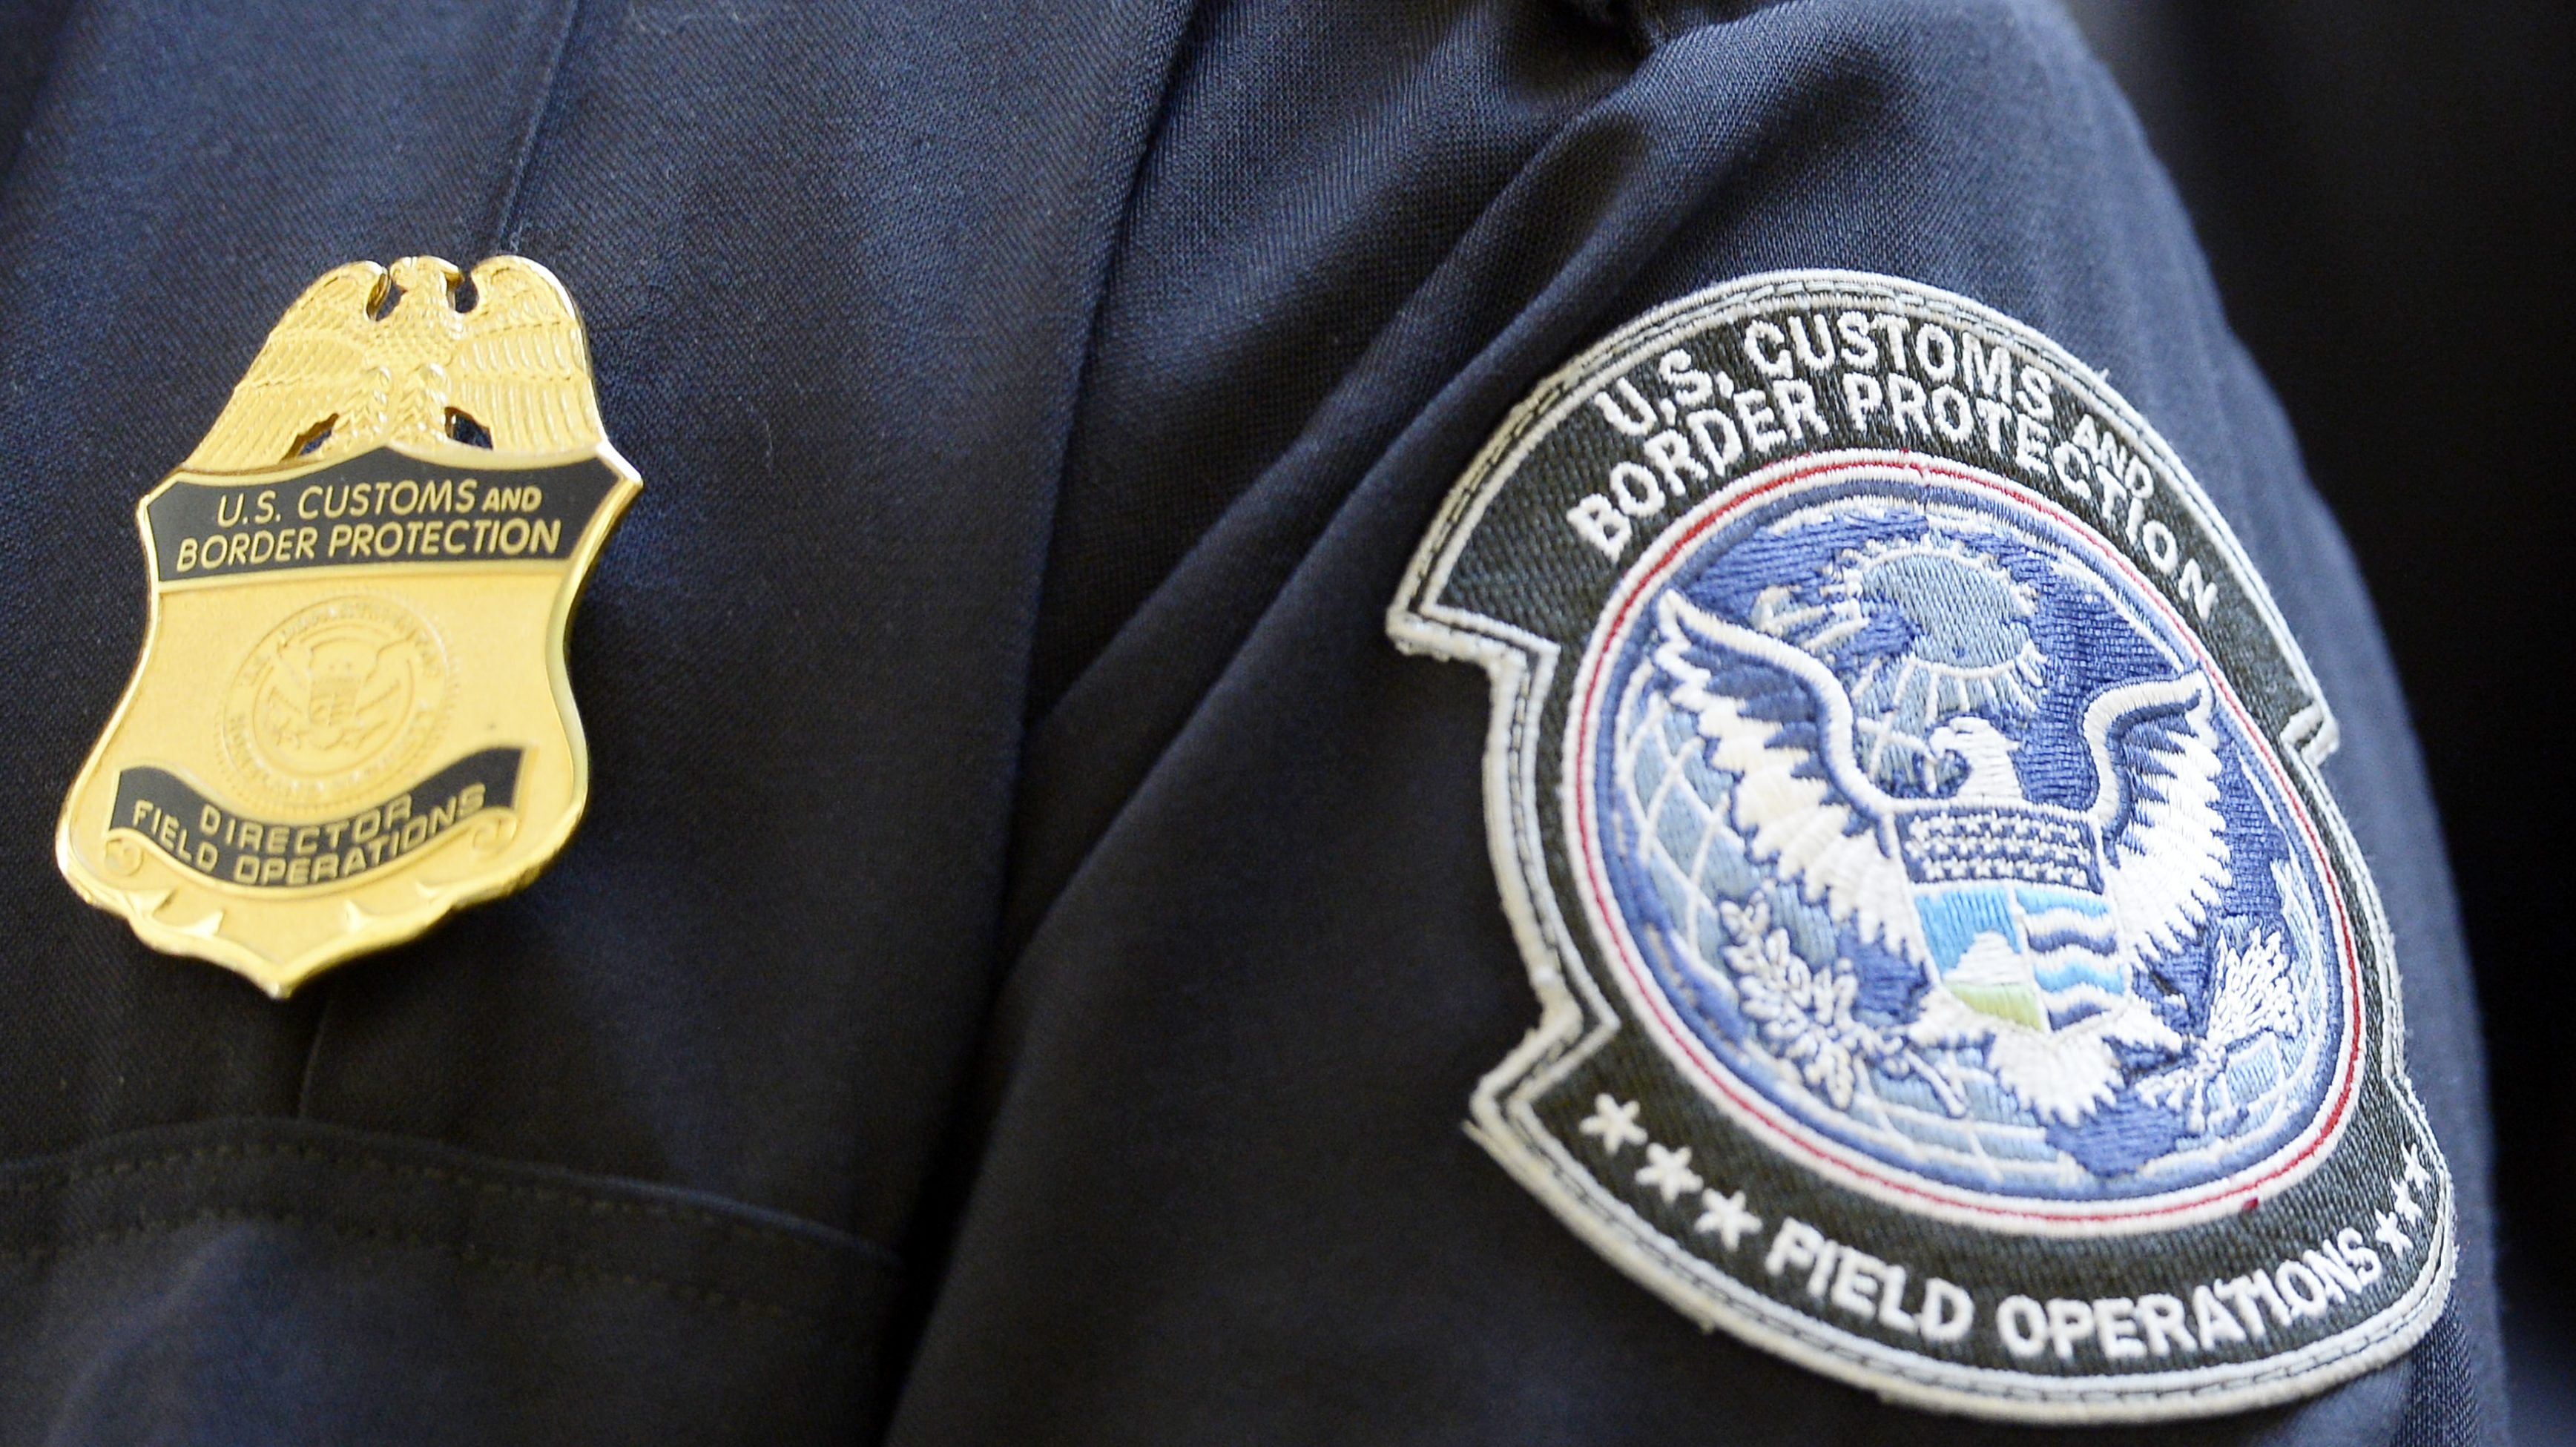 """""""Bodies and minds are breaking down"""": Inside US border agency's suicide crisis"""